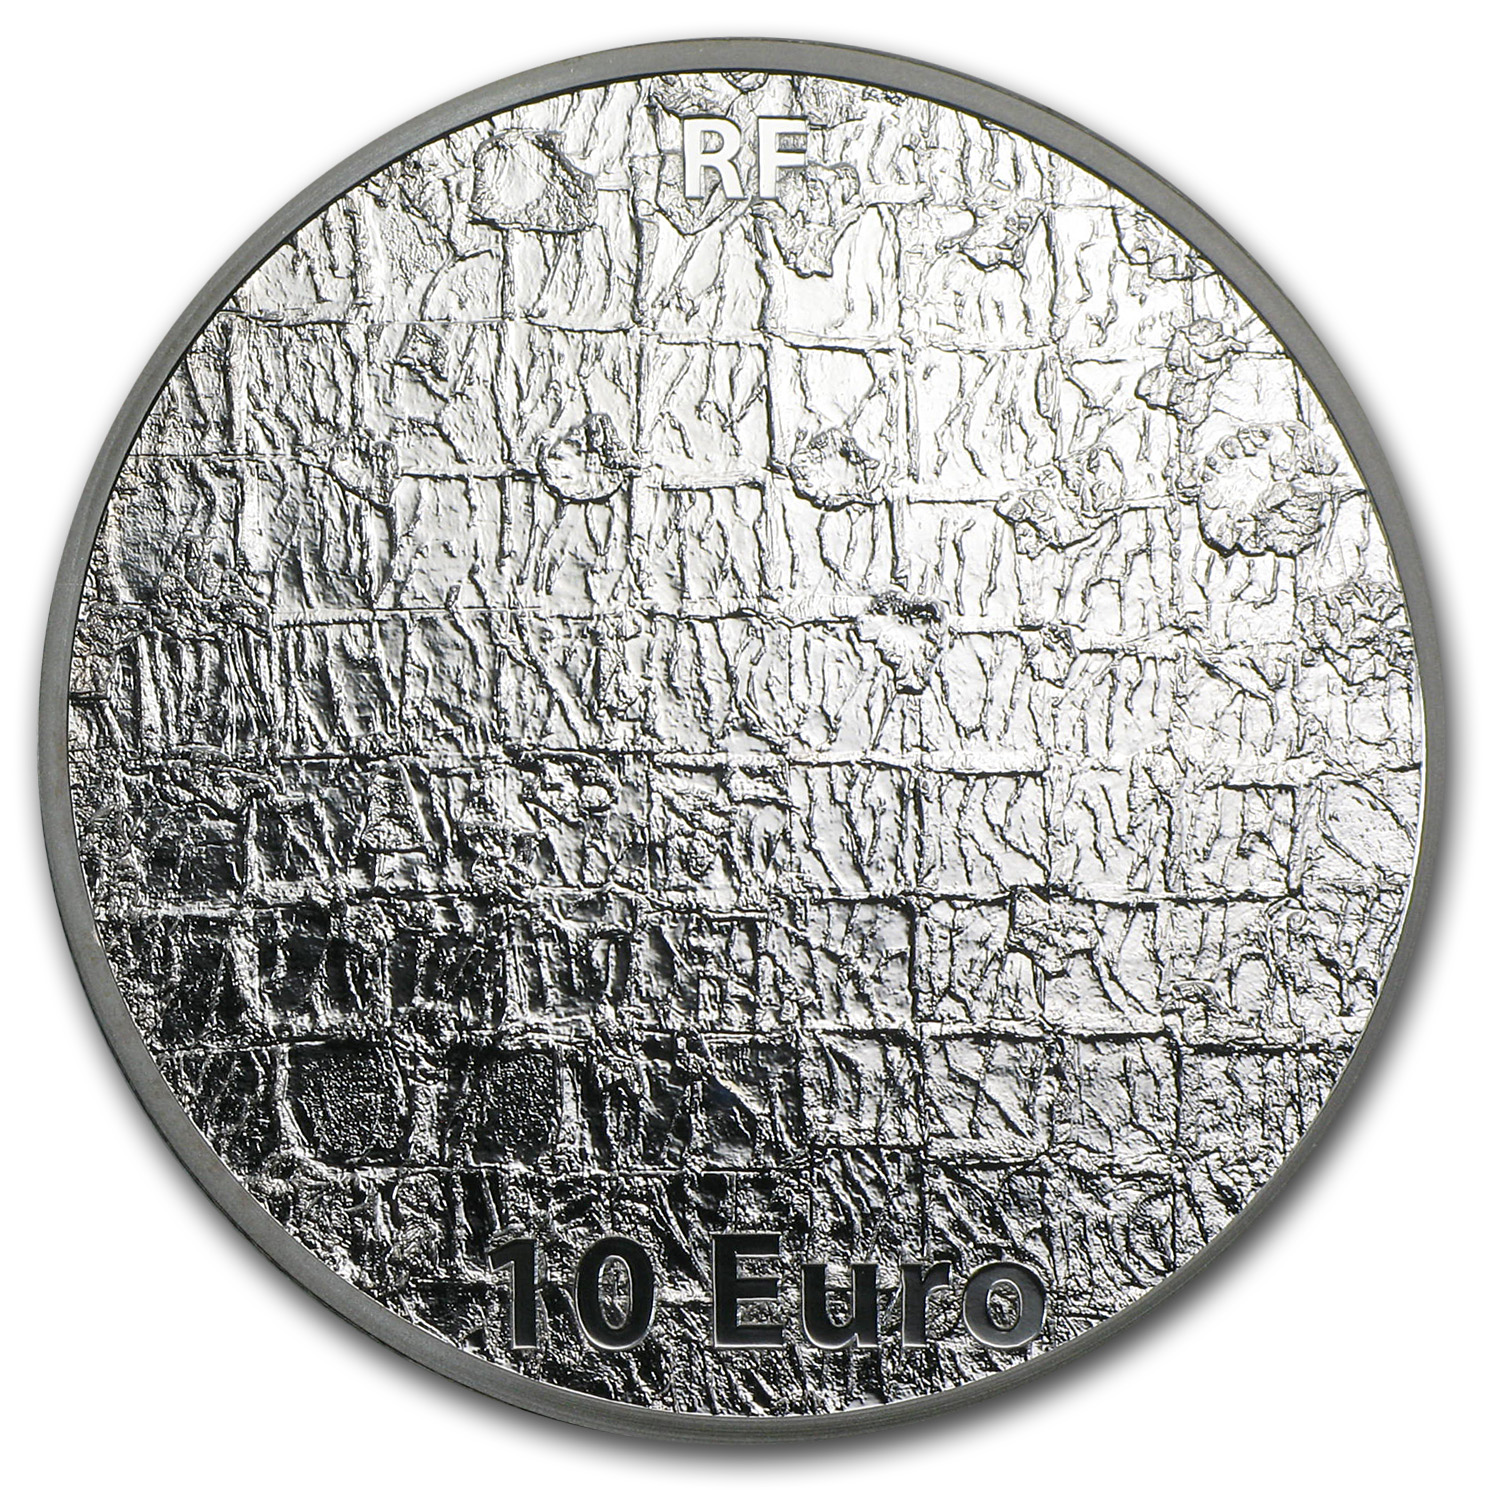 2012 France Silver €10 European Program Proof (Yves Klein)